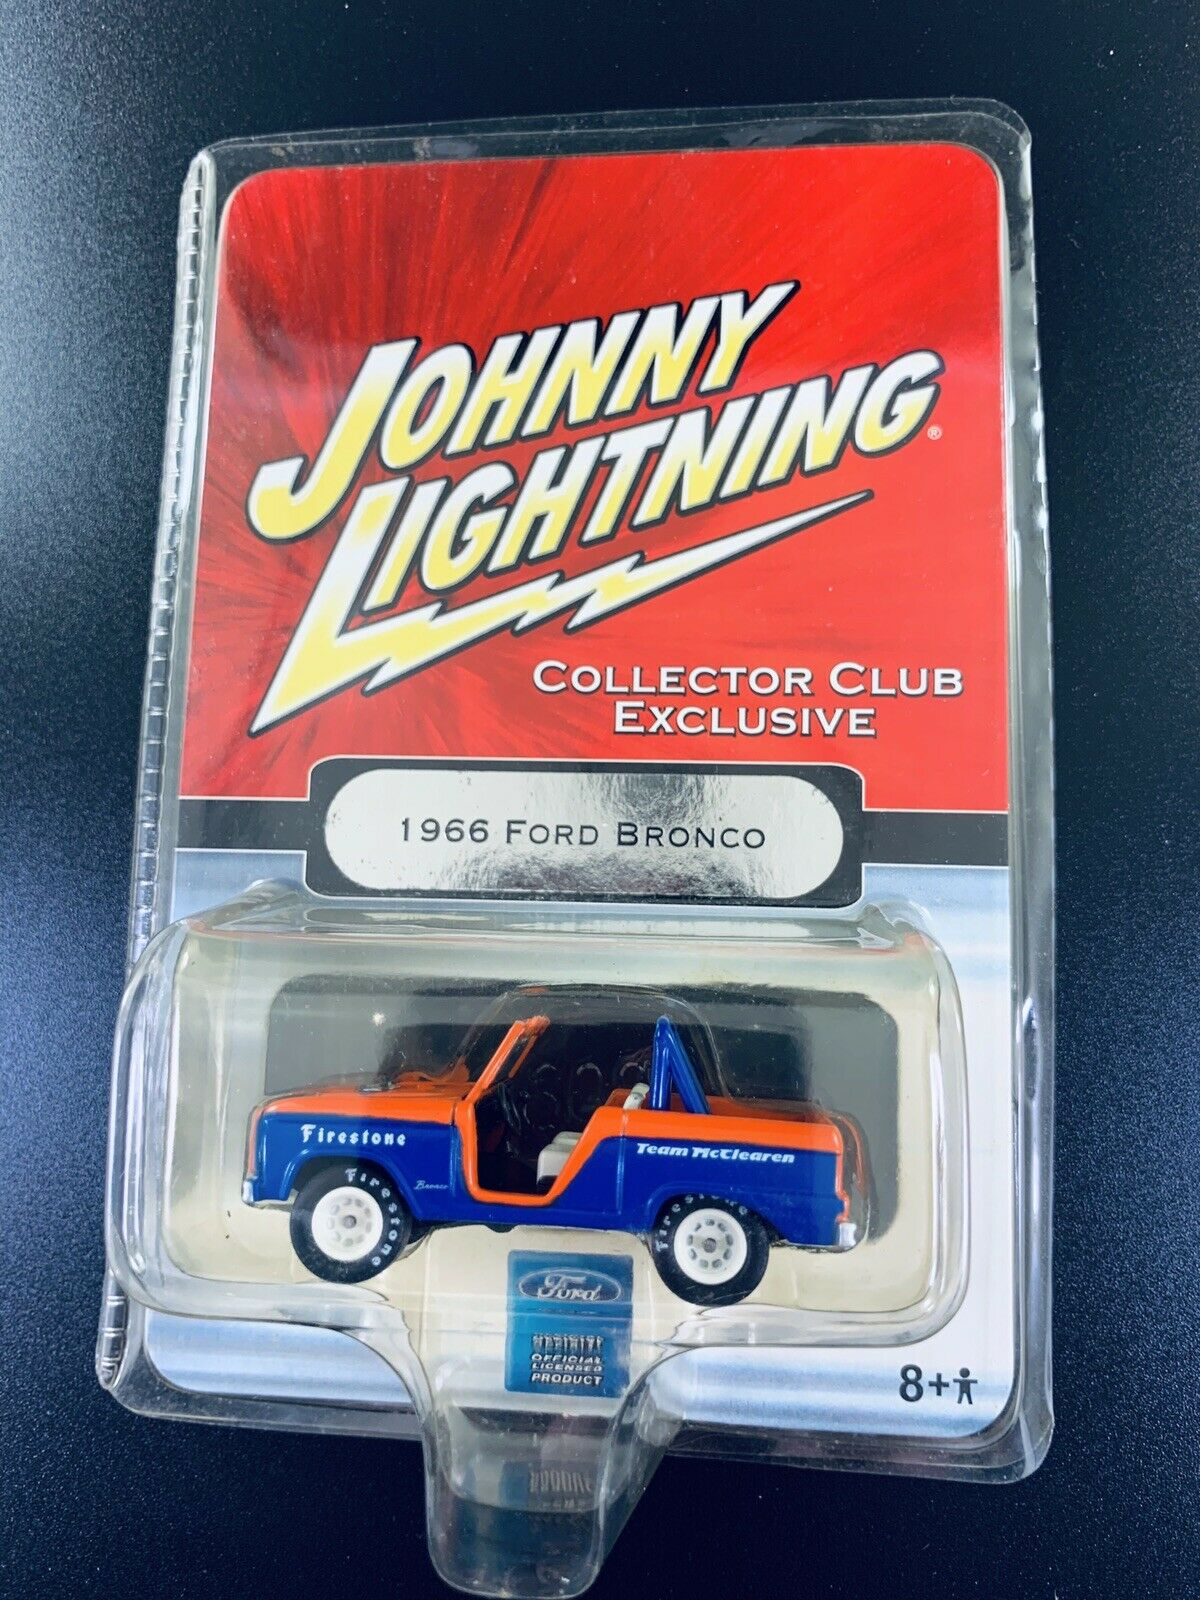 2006 Johnny LIghtning COLLECTOR CLUB EXCLUSIVE 1966 Ford Bronco METAL real rider